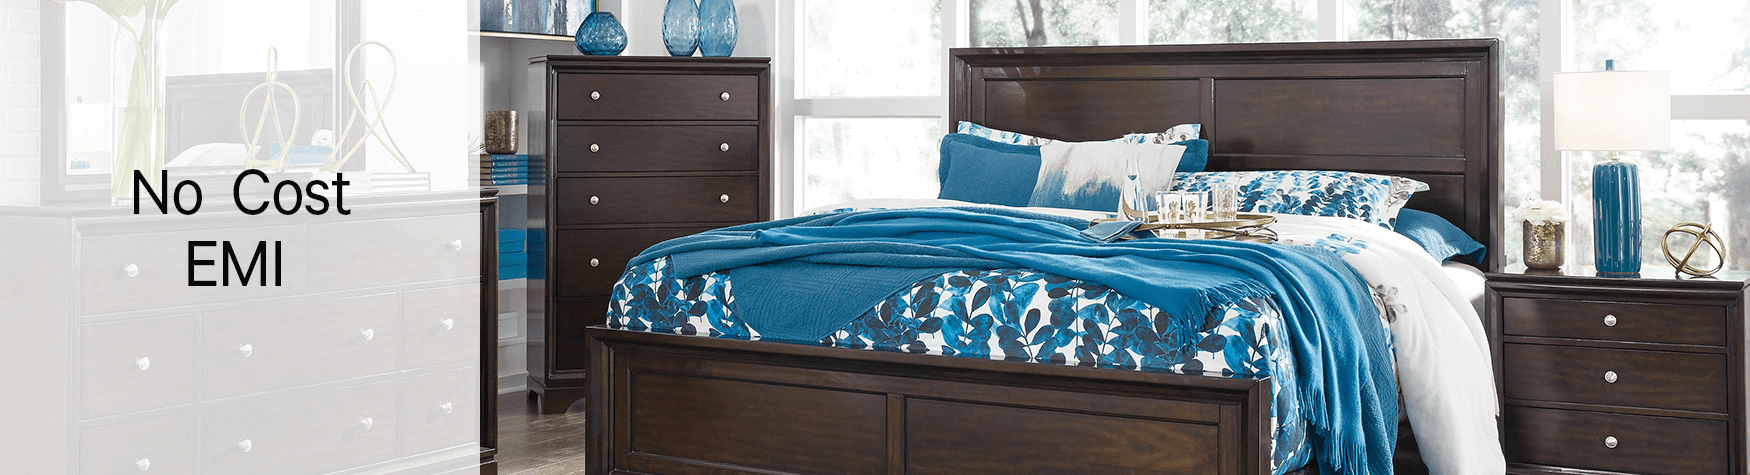 Buy mattress online with No cost EMI – Springtek